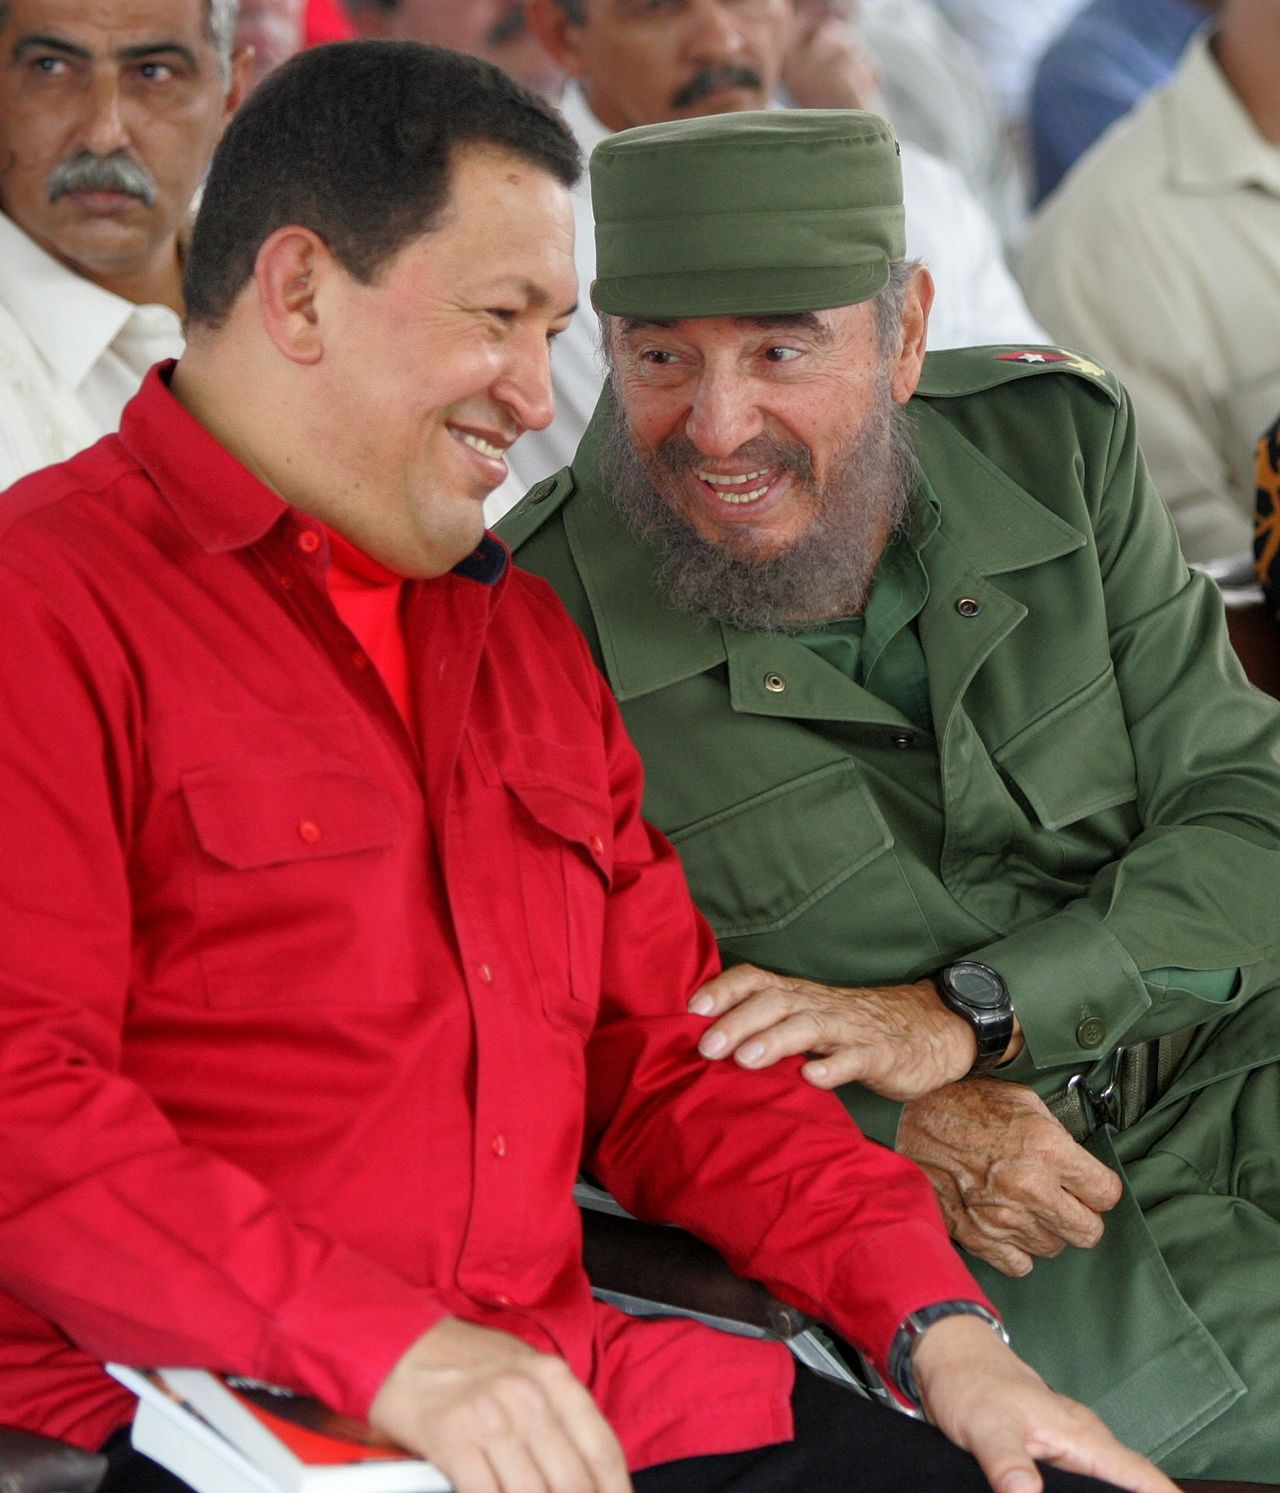 Fidel Castro 13 Fidel Castro International Books Hugo Chávez